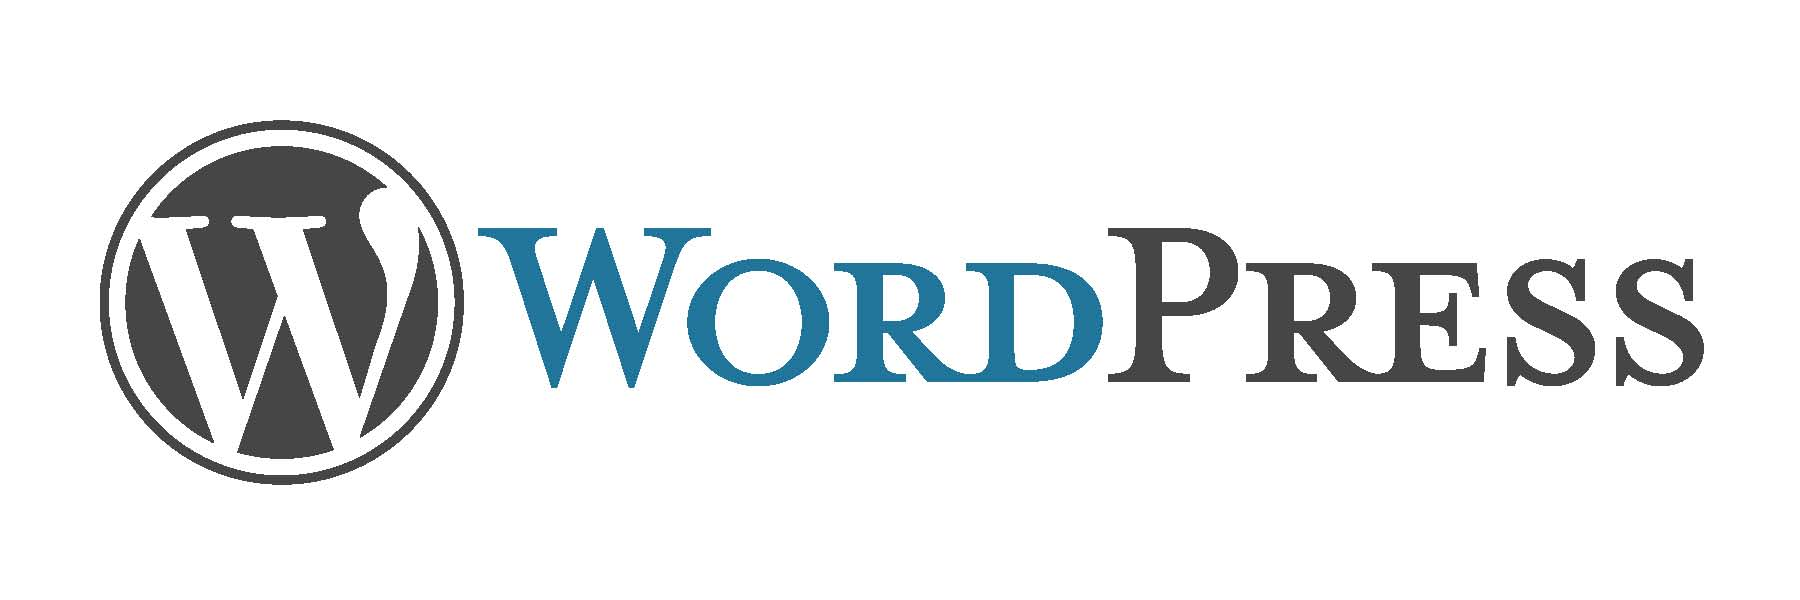 studiobyte wordpress